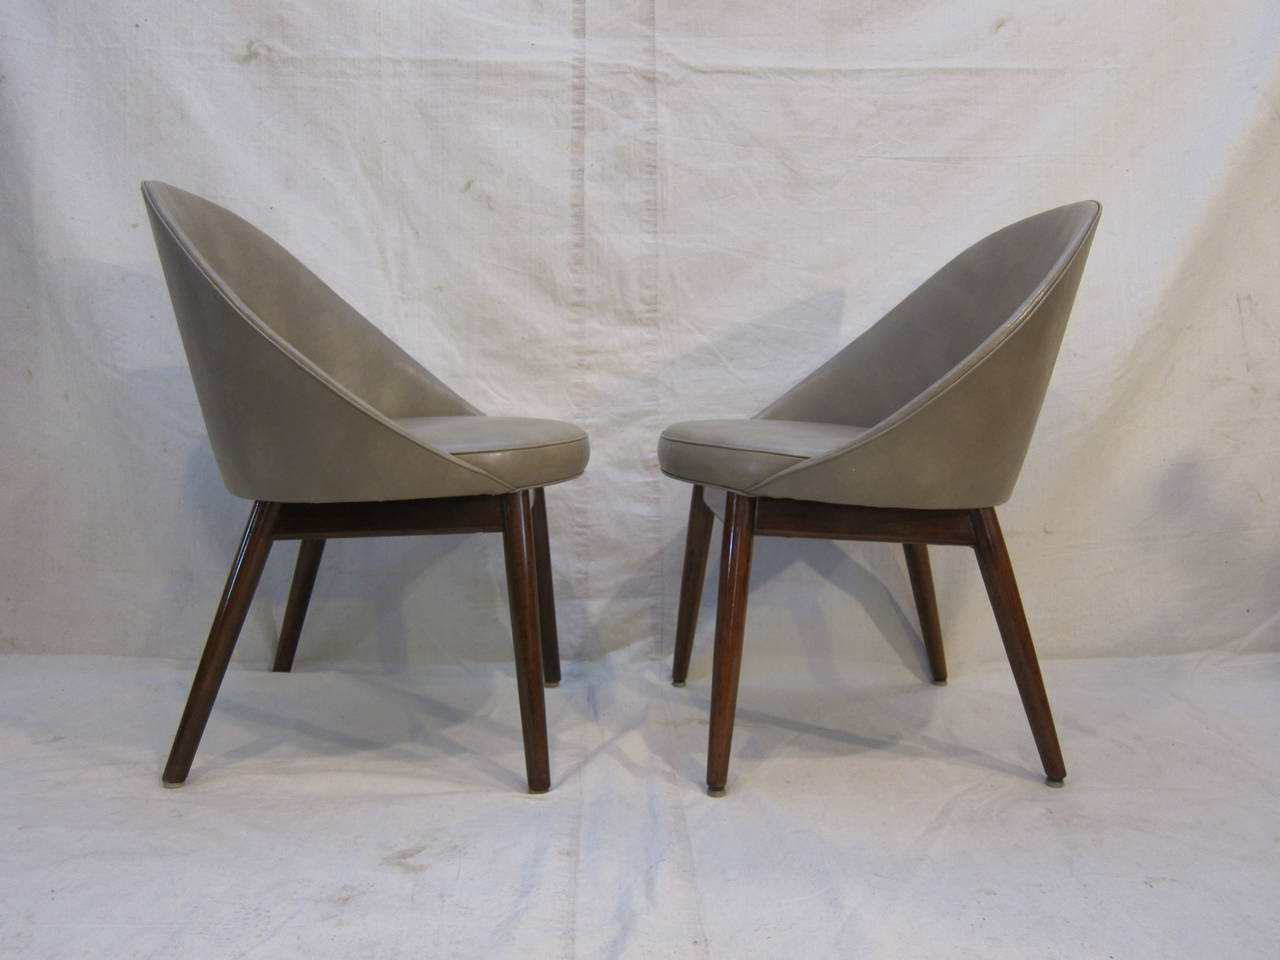 Mid-Century pod chairs attributed to Ejvind Johansson.